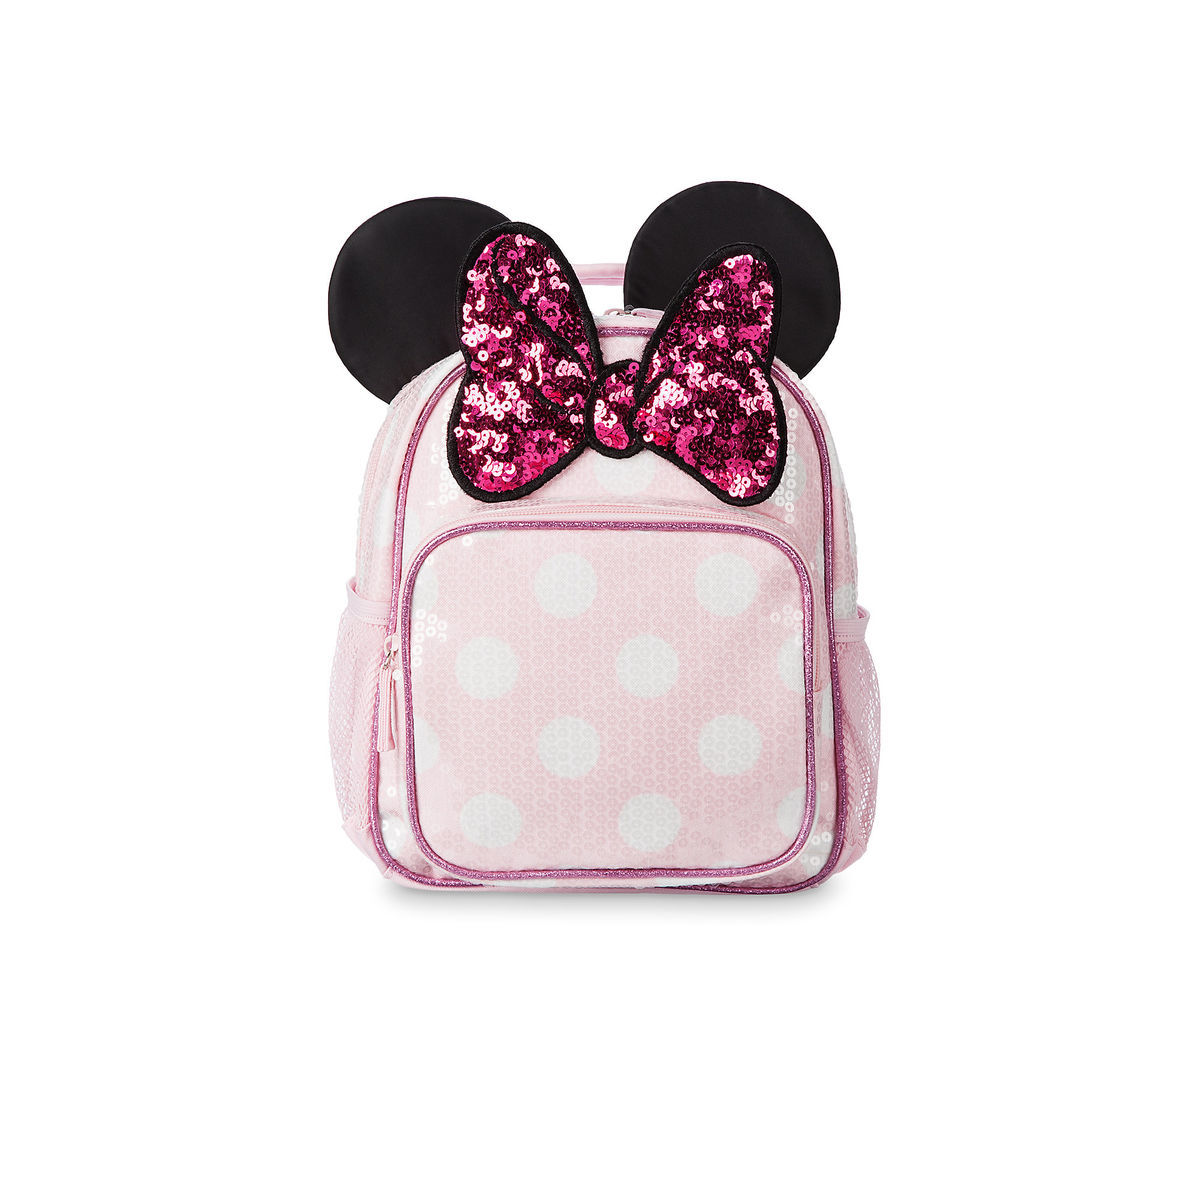 Product Image of Minnie Mouse Mini Backpack for Kids - Personalized   1 ffaeae7955944